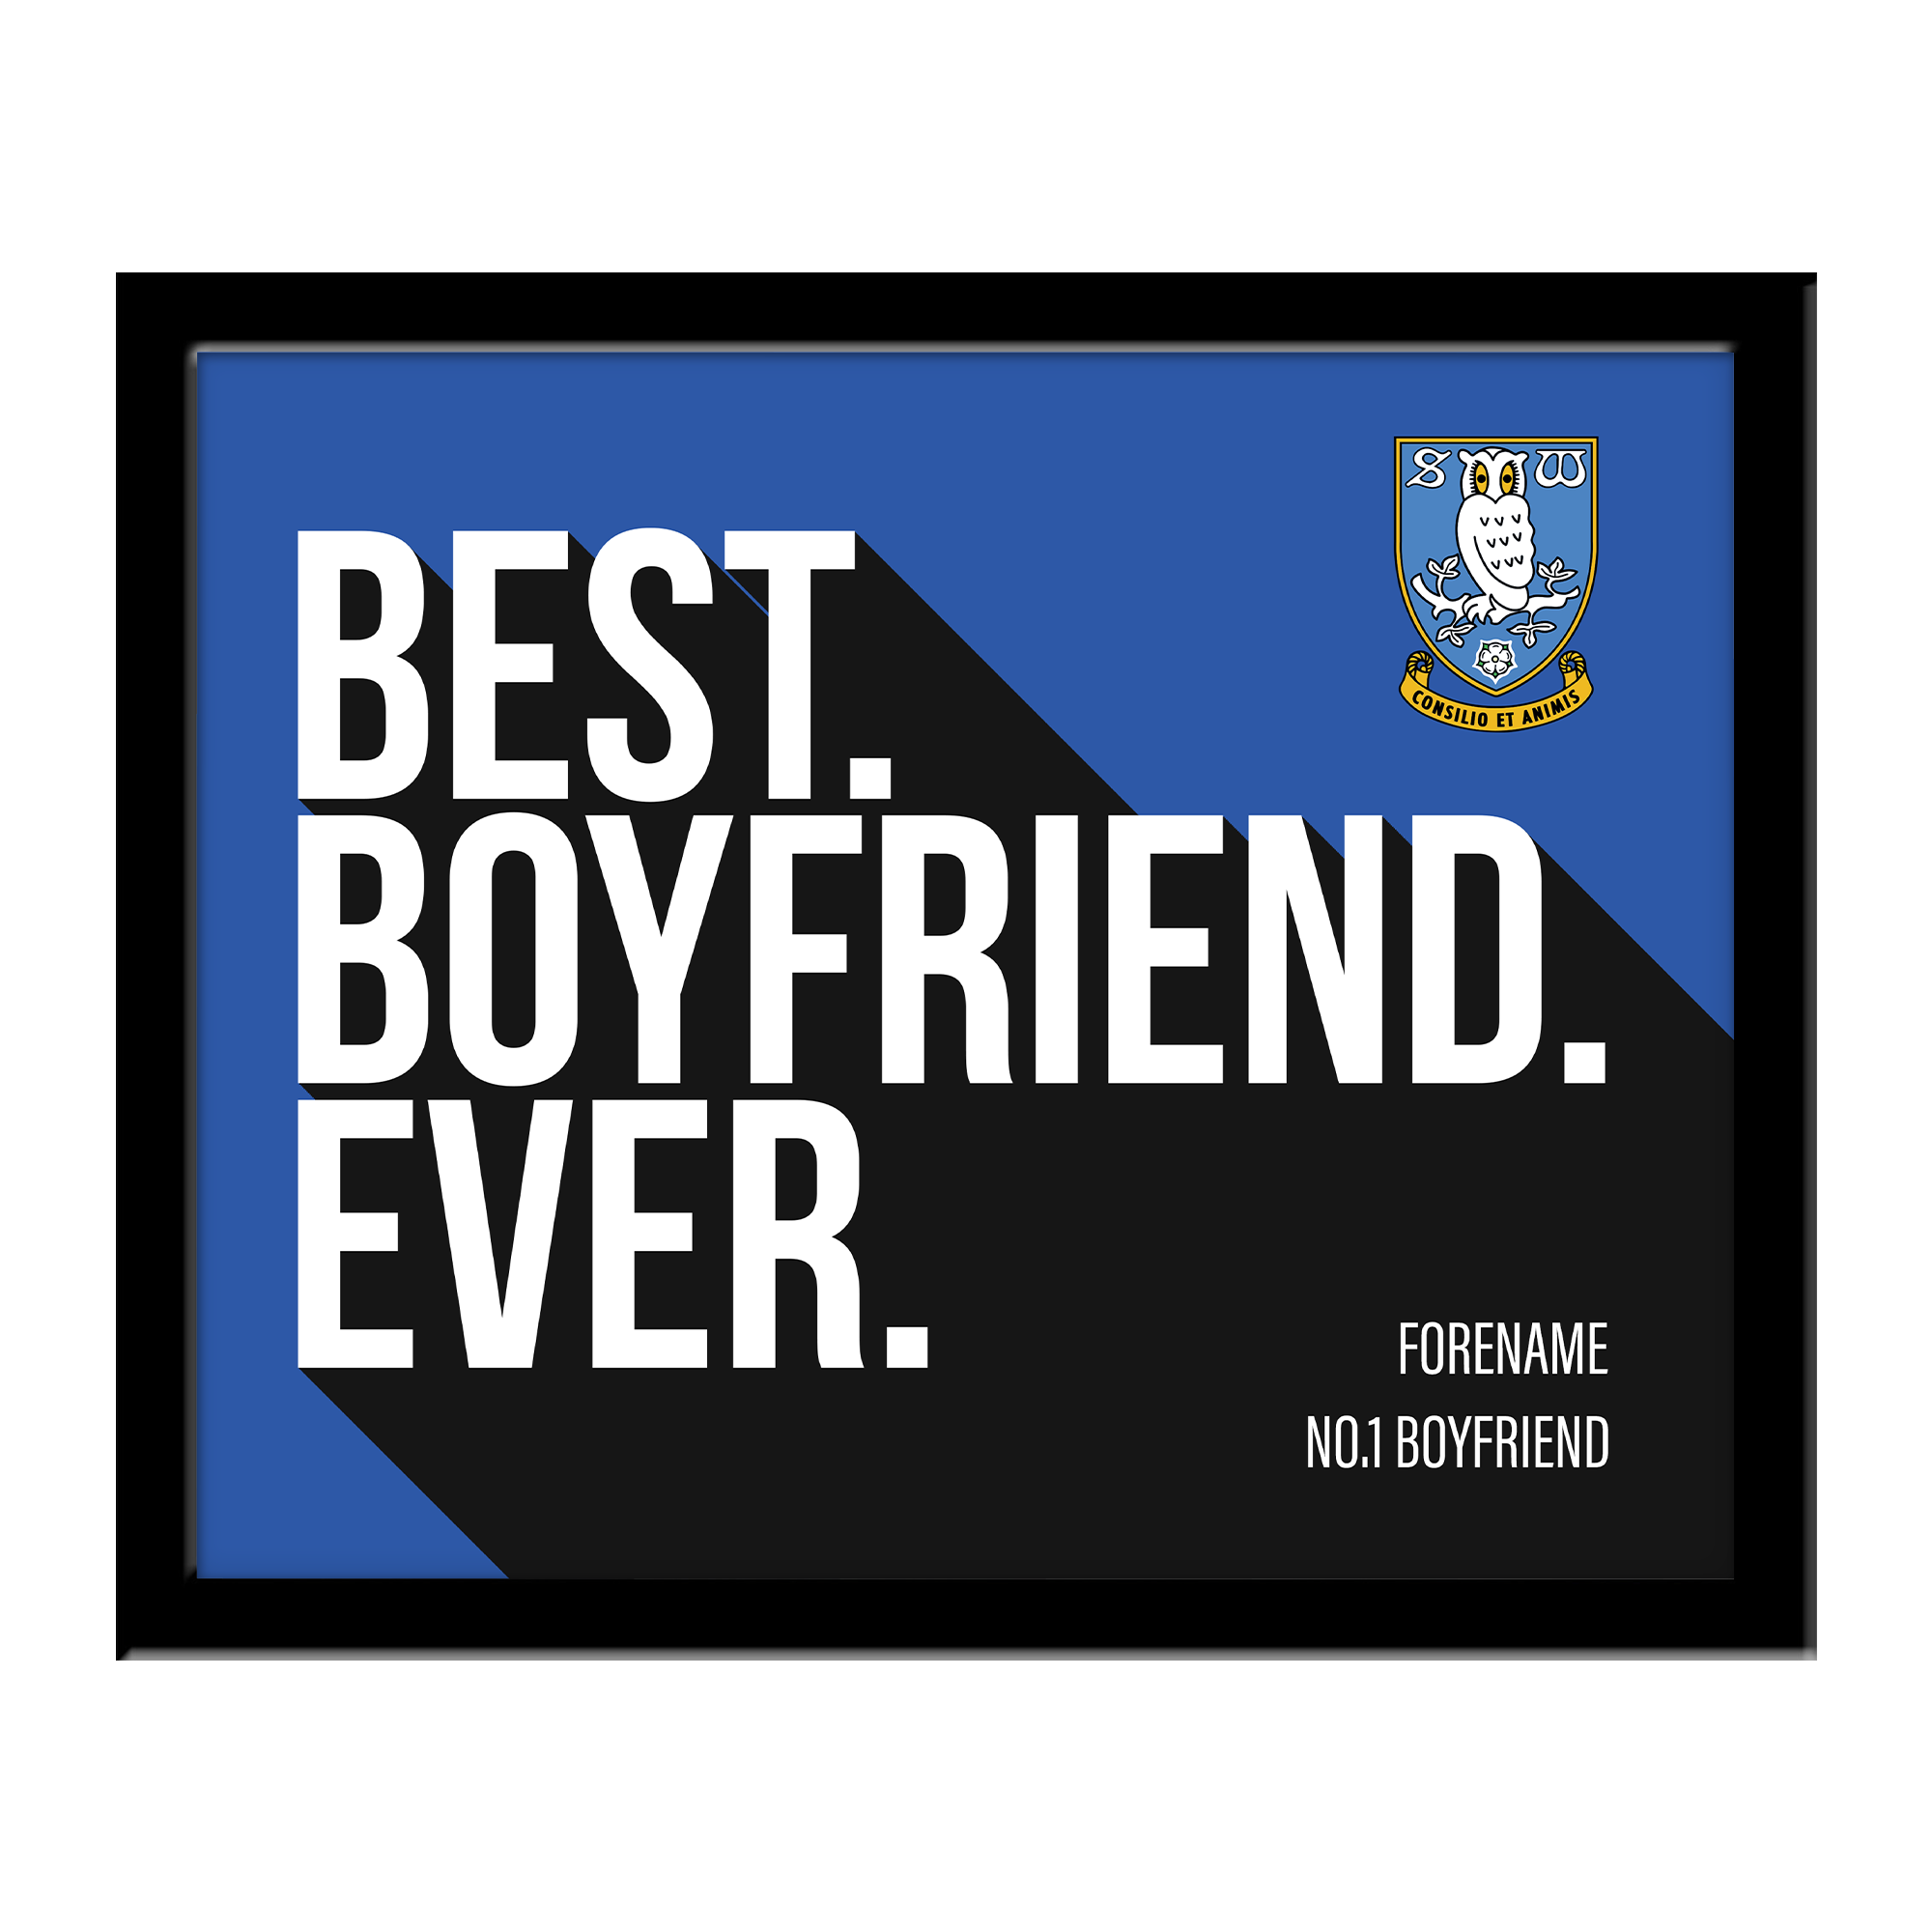 Sheffield Wednesday Best Boyfriend Ever 10 x 8 Photo Framed